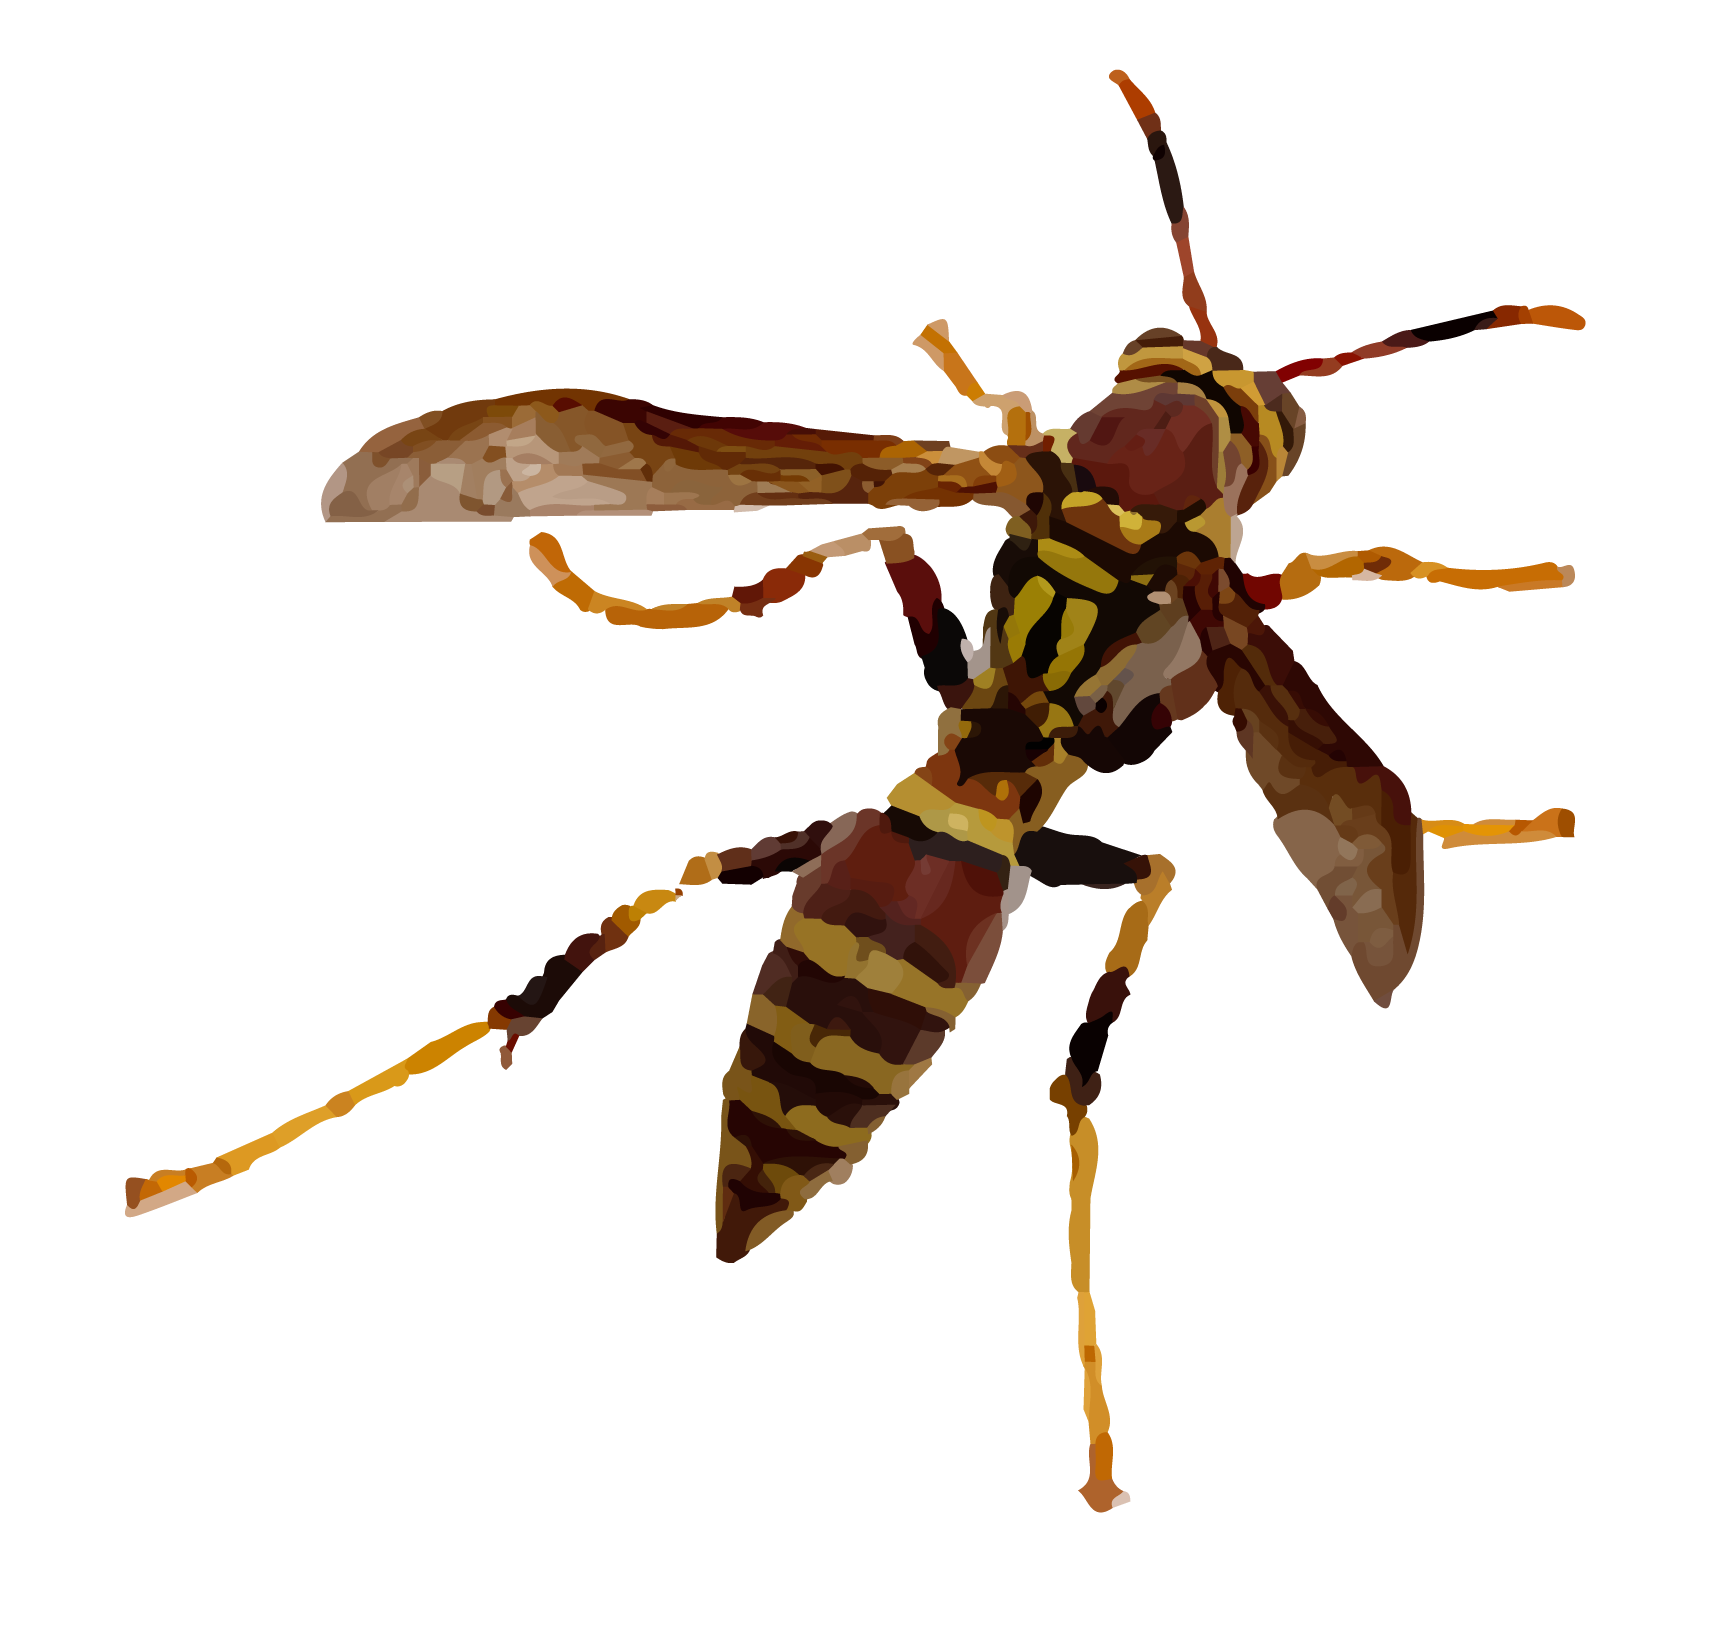 """Bees & Wasps - There are a few essential differences between a wasp and a bee. Most wasps feed on insects, spiders and other animal matter. Most bees, on the other hand, feed on pollen and nectar (although there are a few parasitic species of bee). Bees are nearly always """"hairy"""" with short legs, which assists in their pollen-collecting activity. Wasps typically have smooth, slender bodies that are """"pinched"""" at the waist and have longer legs than bees."""